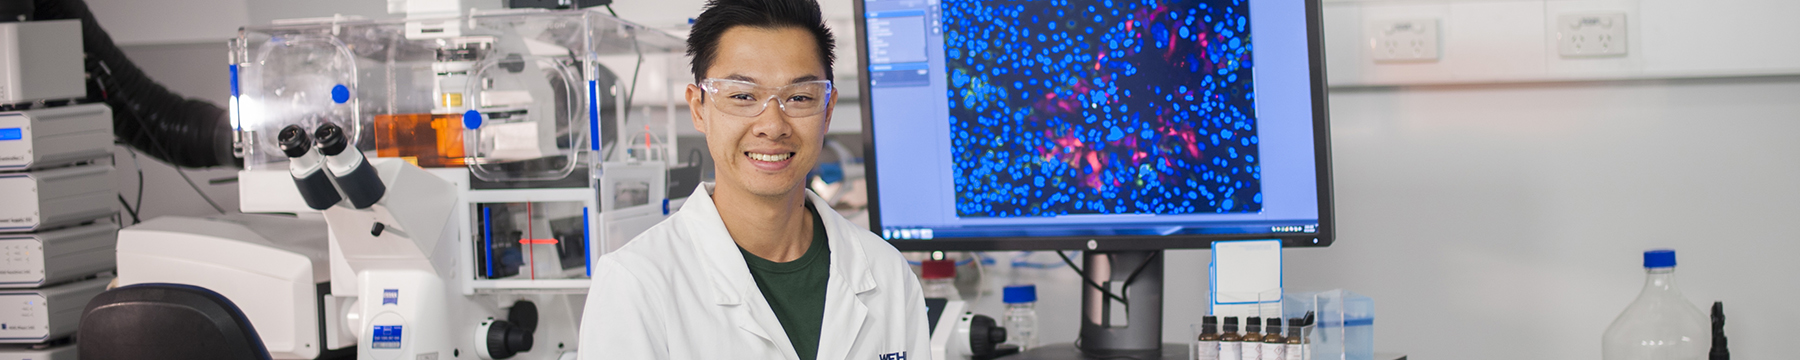 Dr Tan Nguyen in front of a microscope